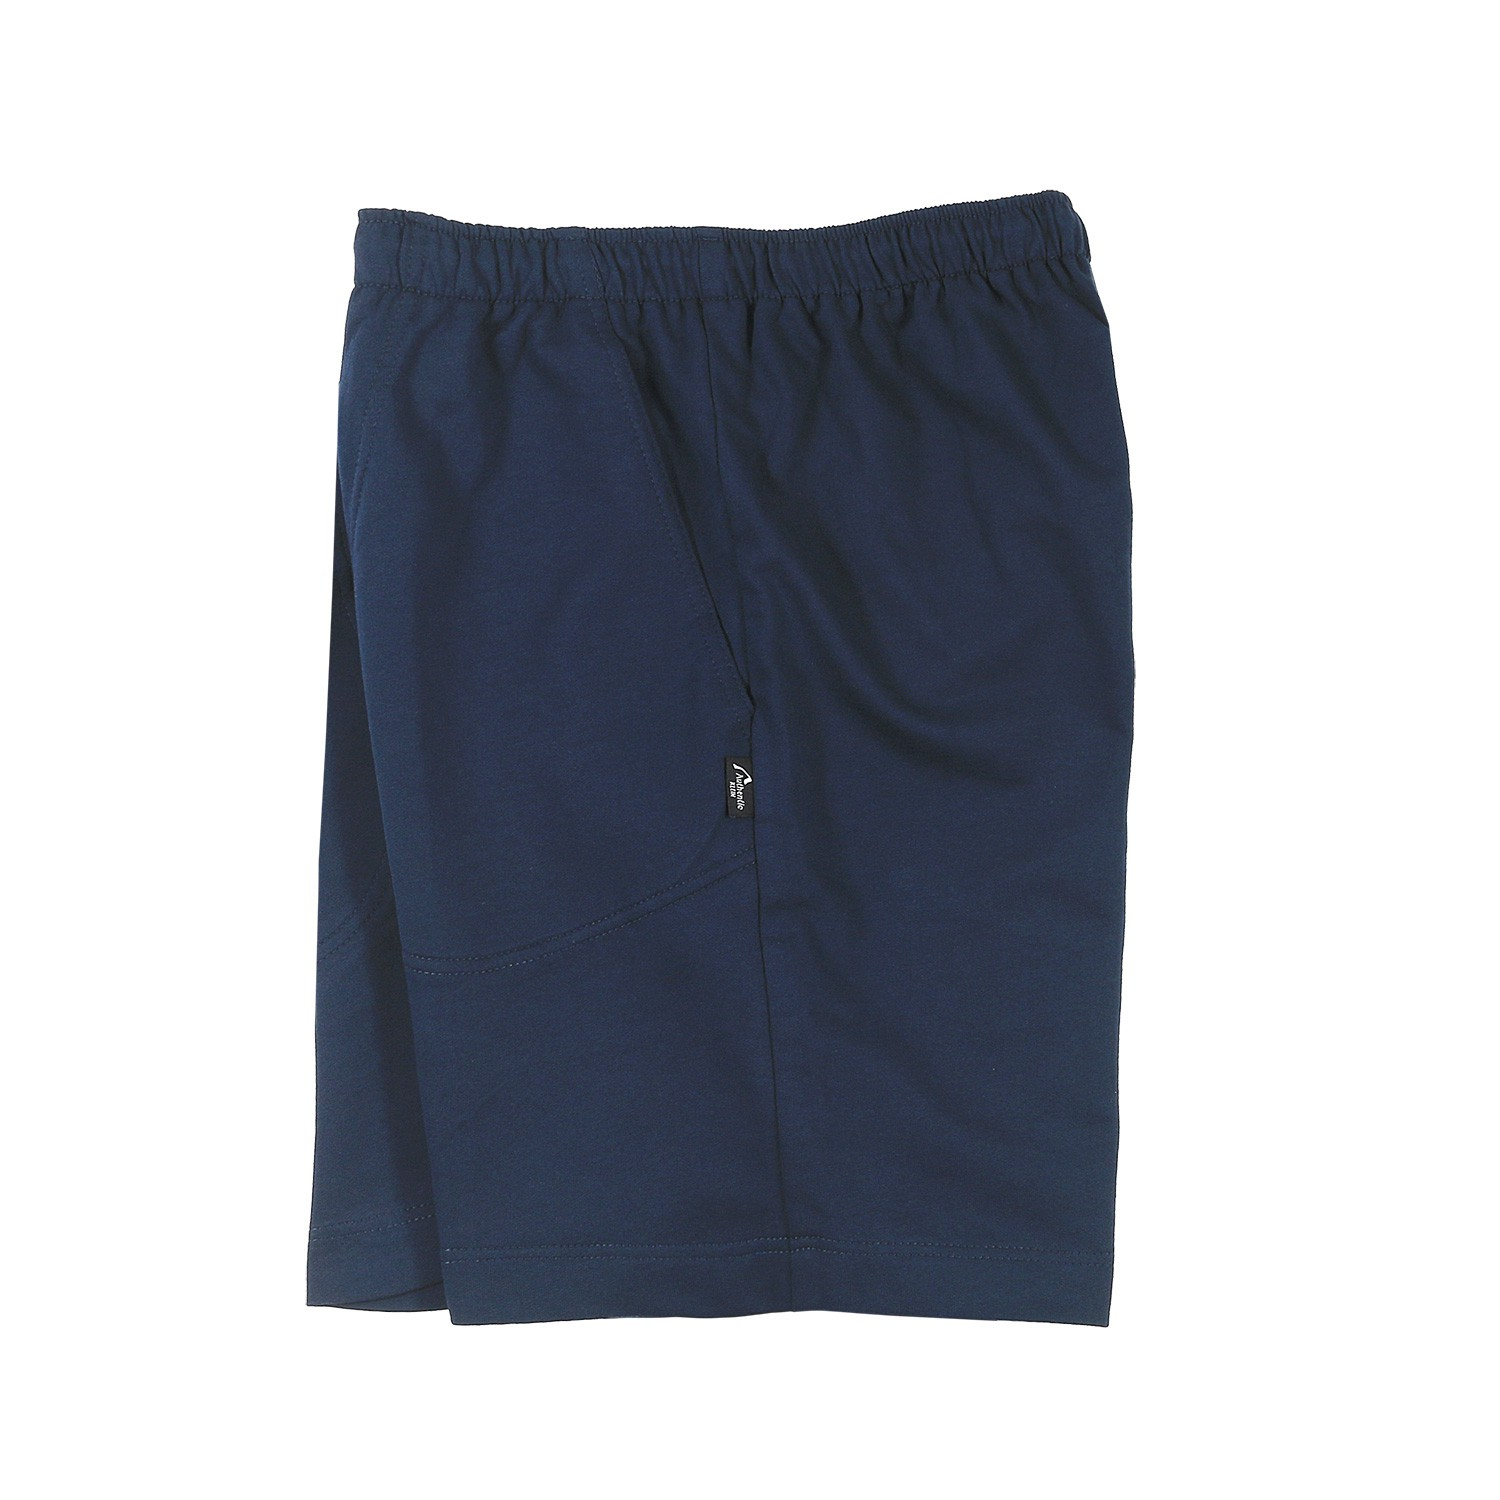 Detail Image to Sports and leisure bermuda in navy, plus sizes by AUTHENTIC KLEIN